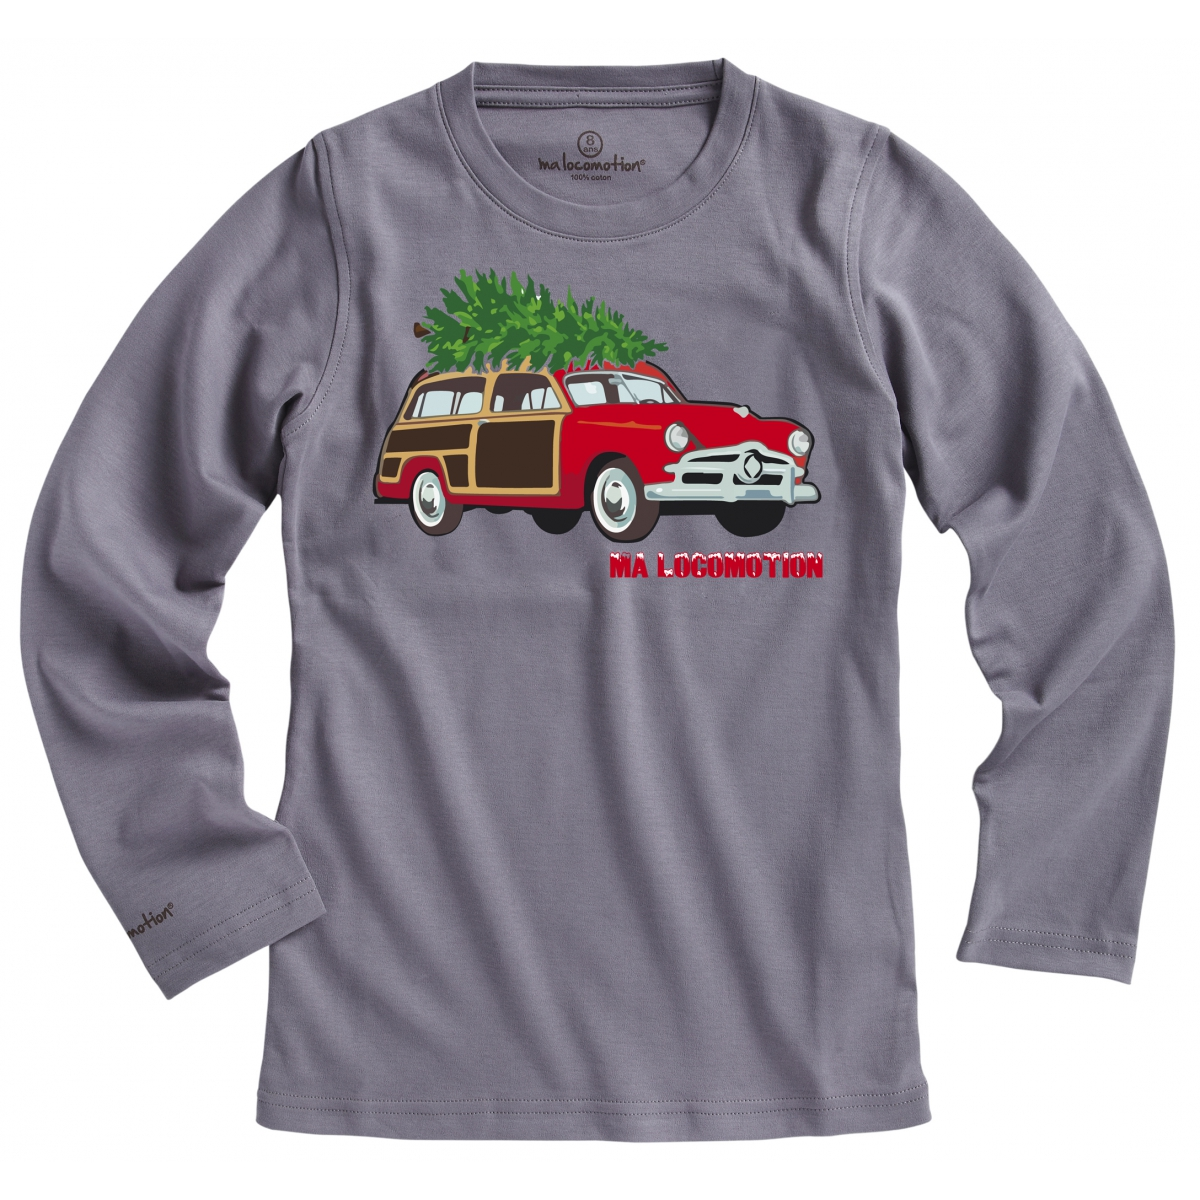 T-shirt voiture de Noël - anthracite